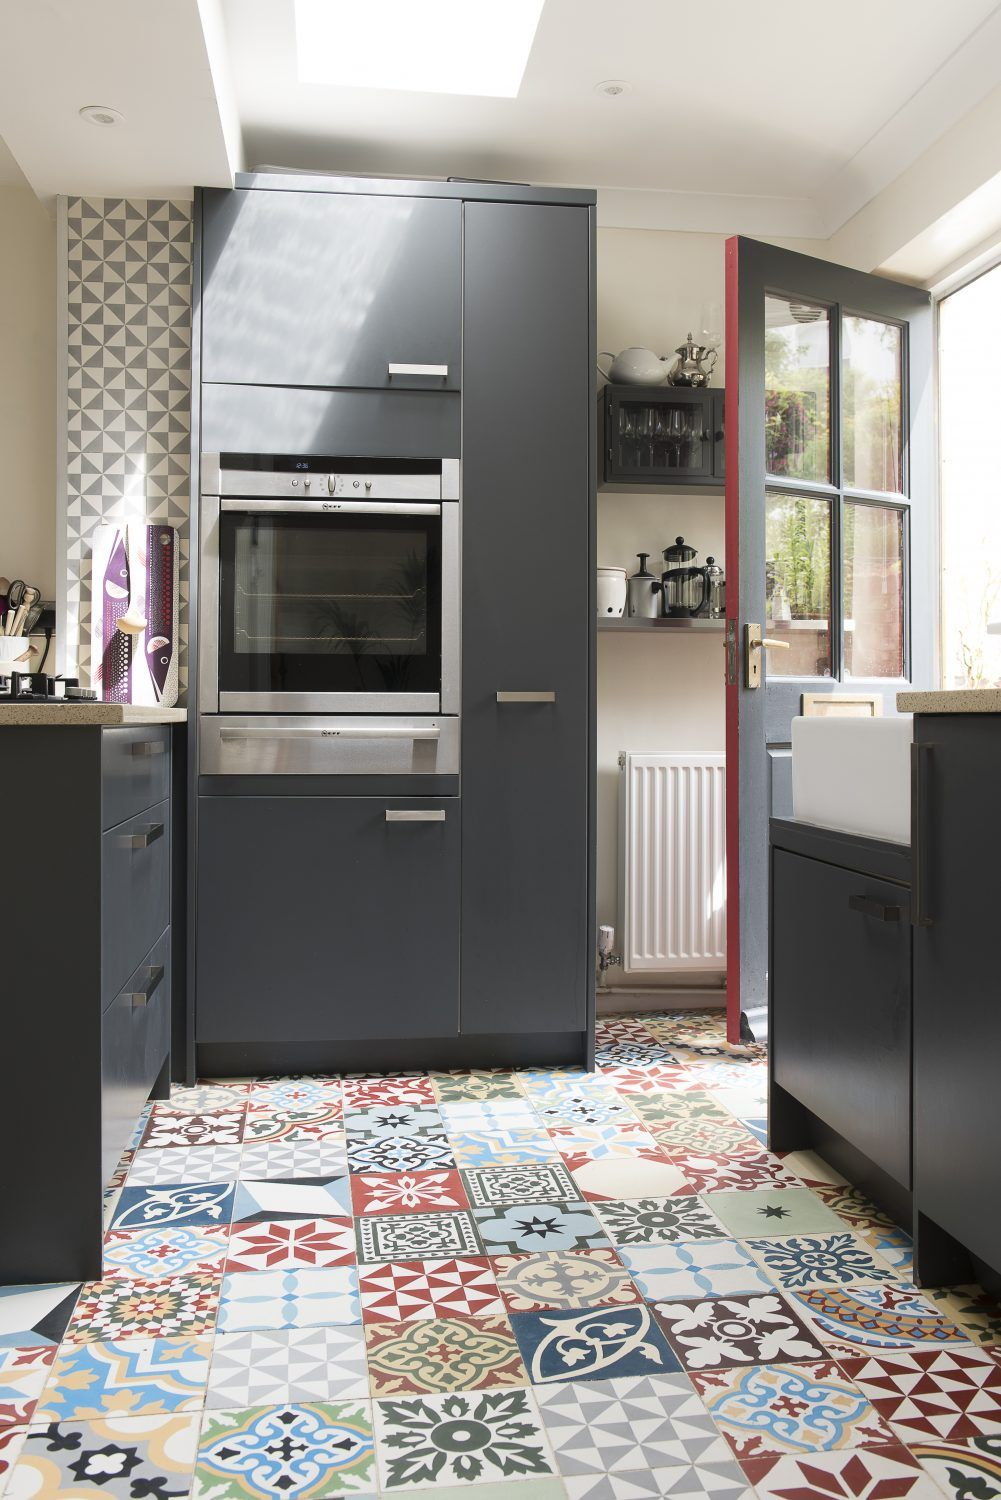 The Front Door Opens Into The Kitchen The Units Are From Jewsons And The Encaustic Tiles Are From Encaustic Tiles Ltd House Interior Kitchen Cabinets